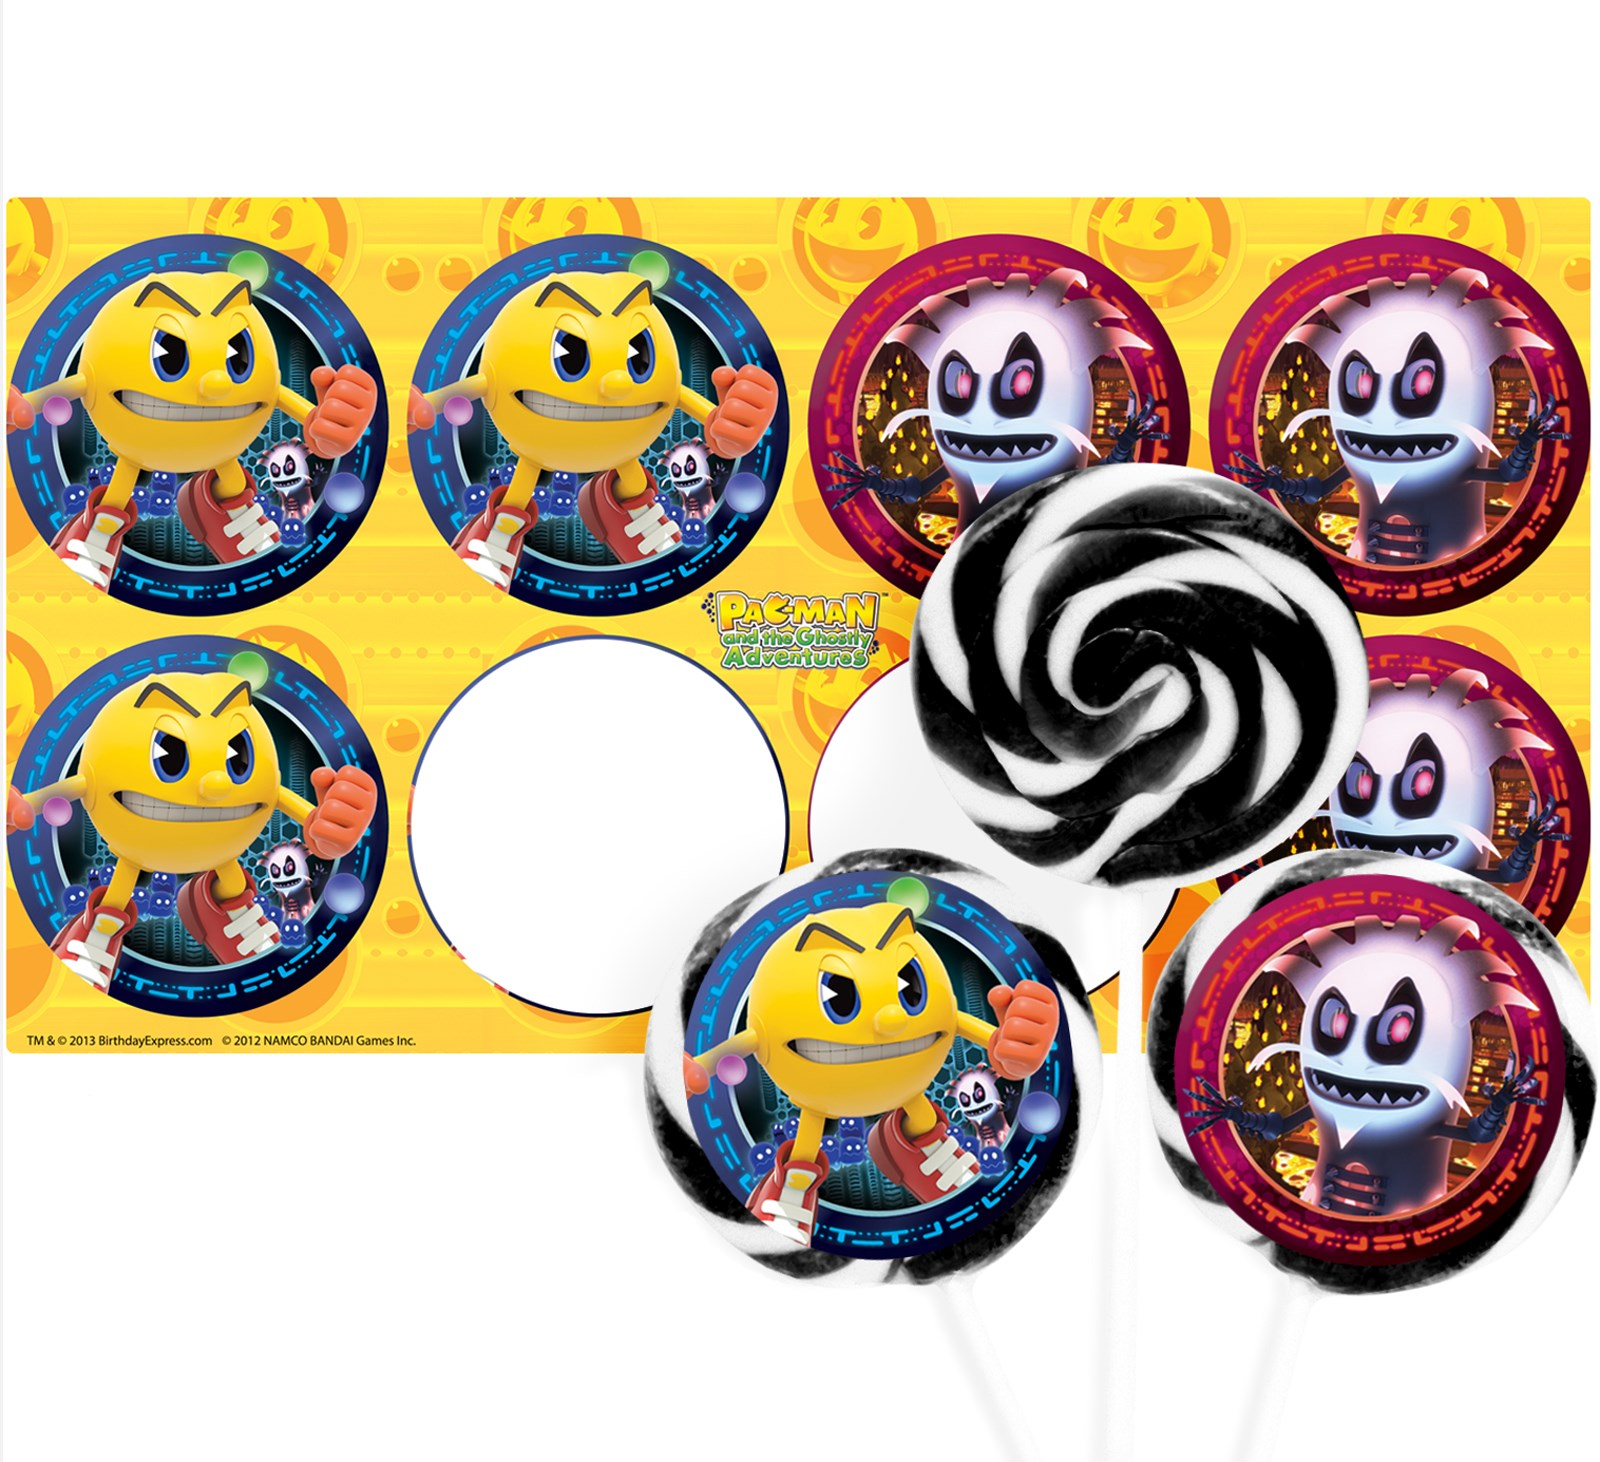 PAC-MAN and the Ghostly Adventures Deluxe Lollipop Favor Kit